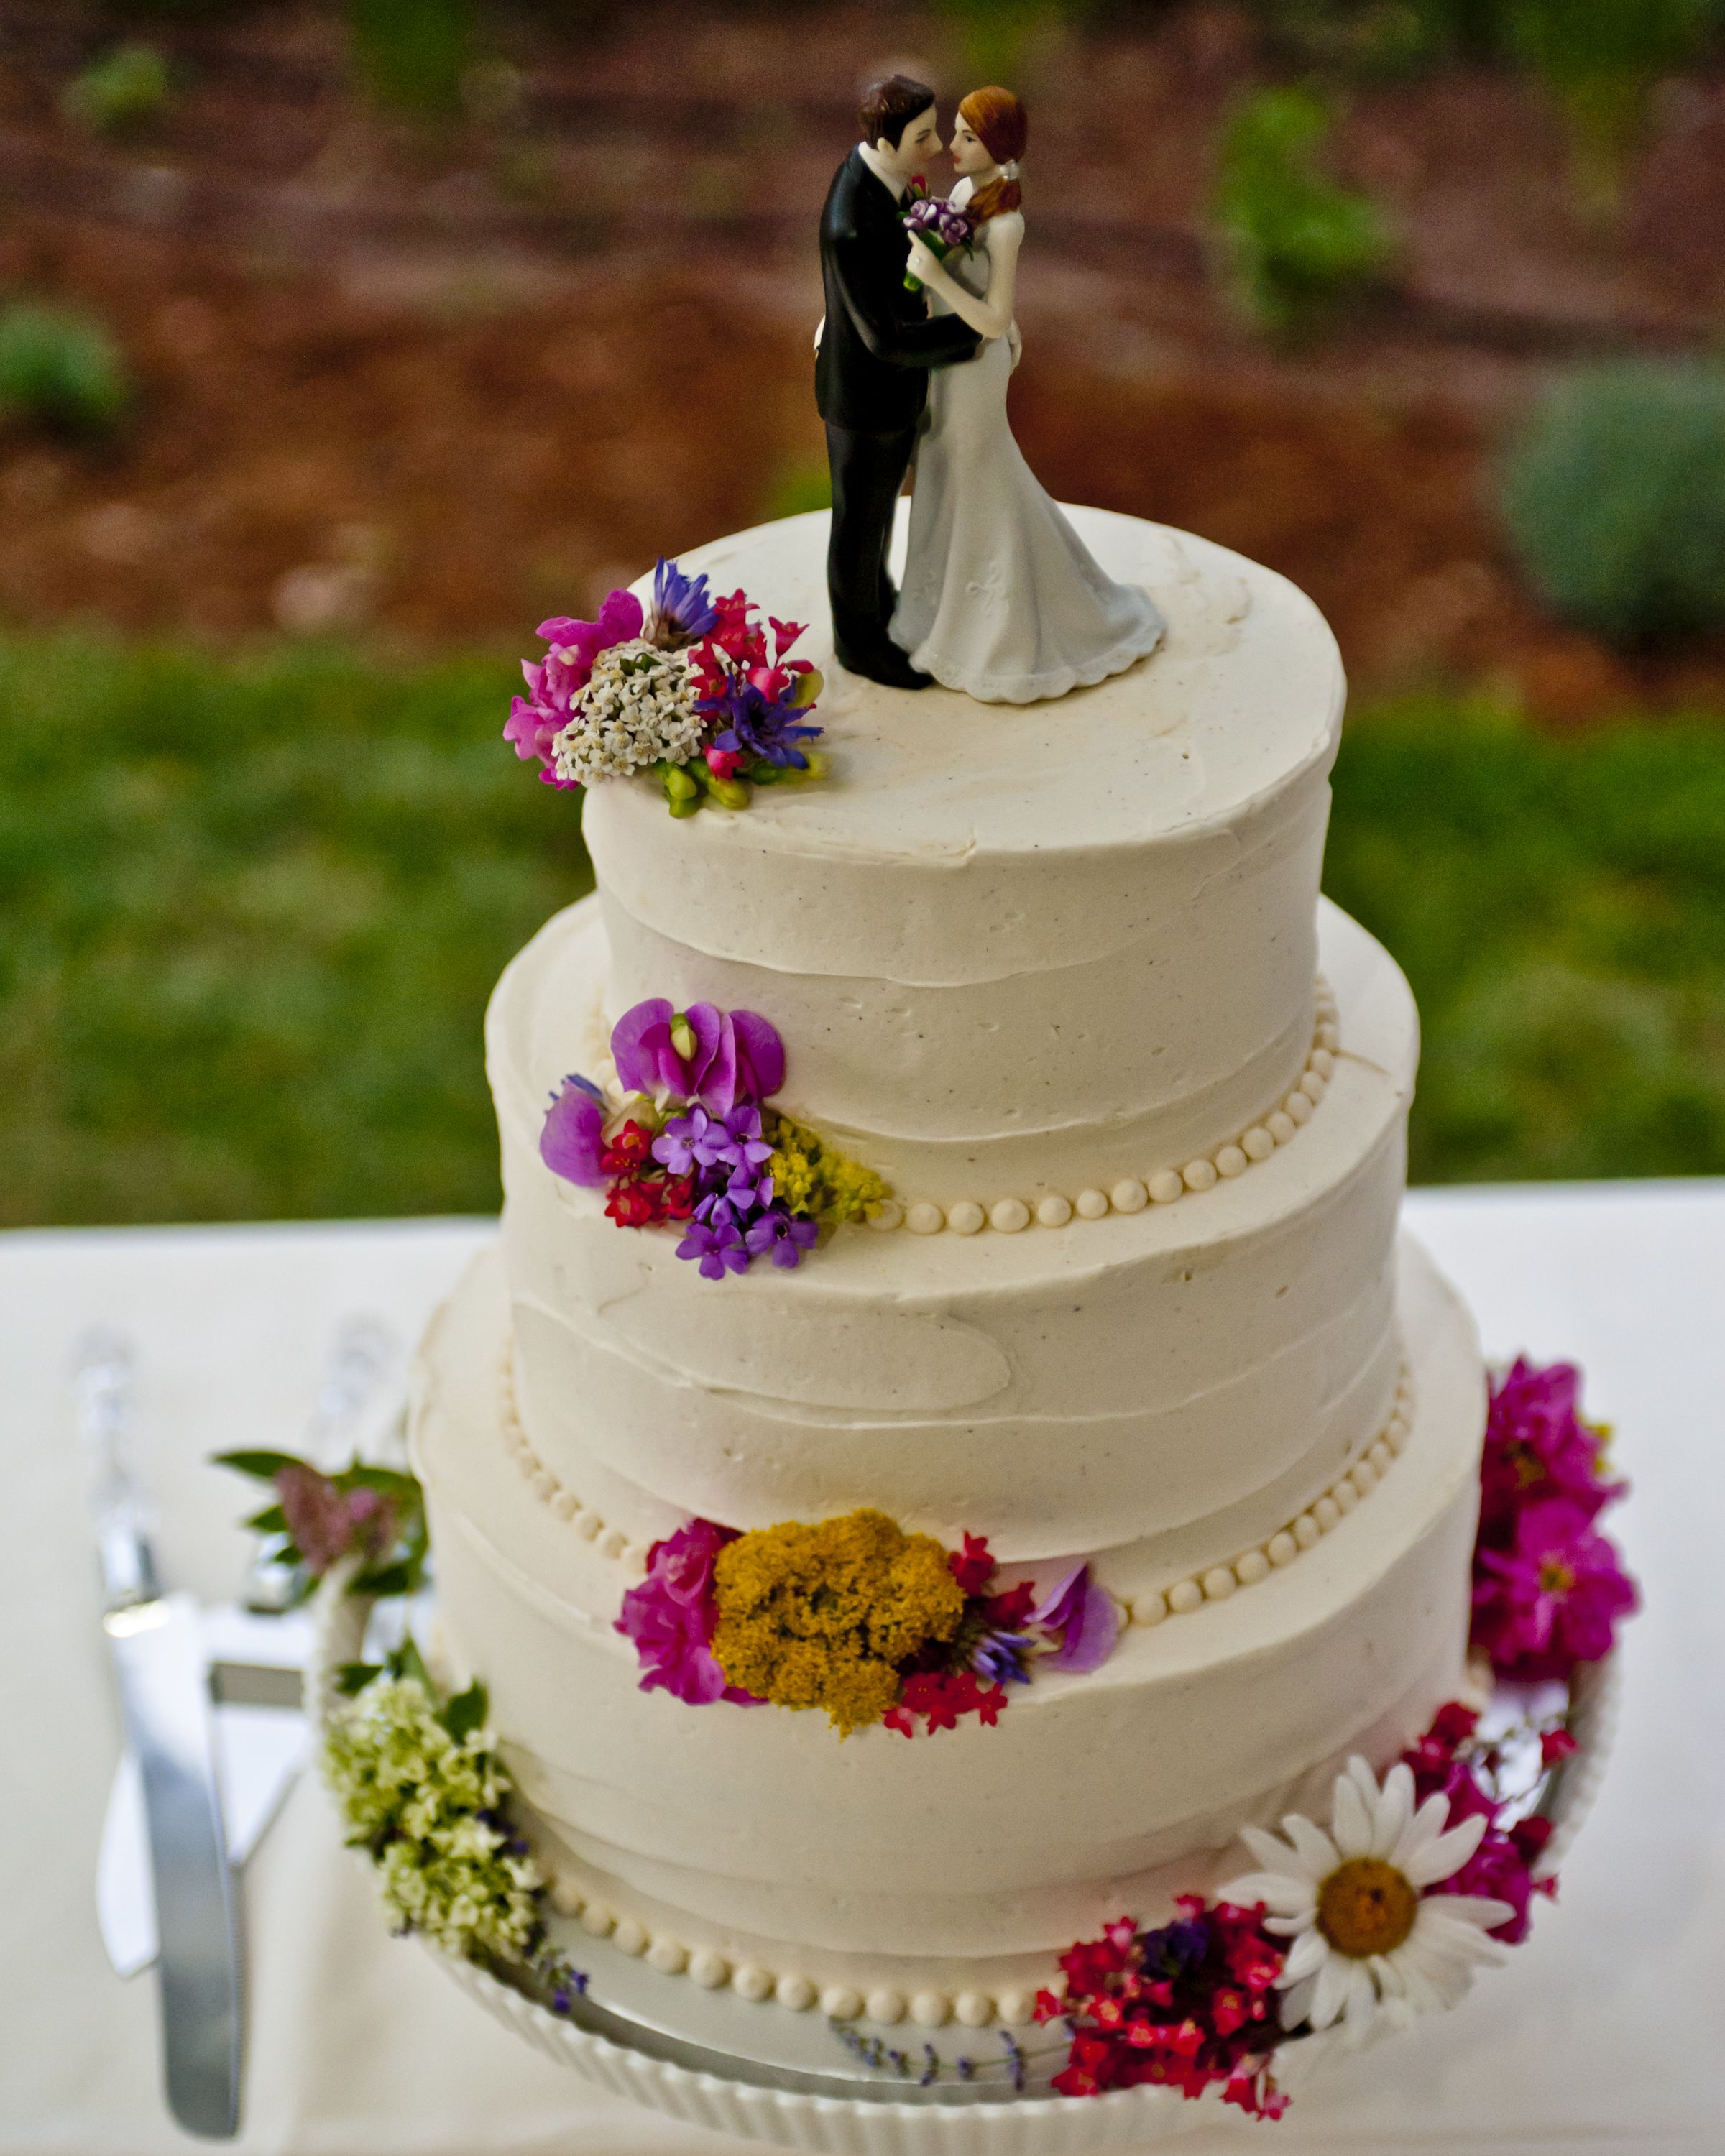 Pinterest Wedding Cakes: Pinterest: Discover And Save Creative Ideas